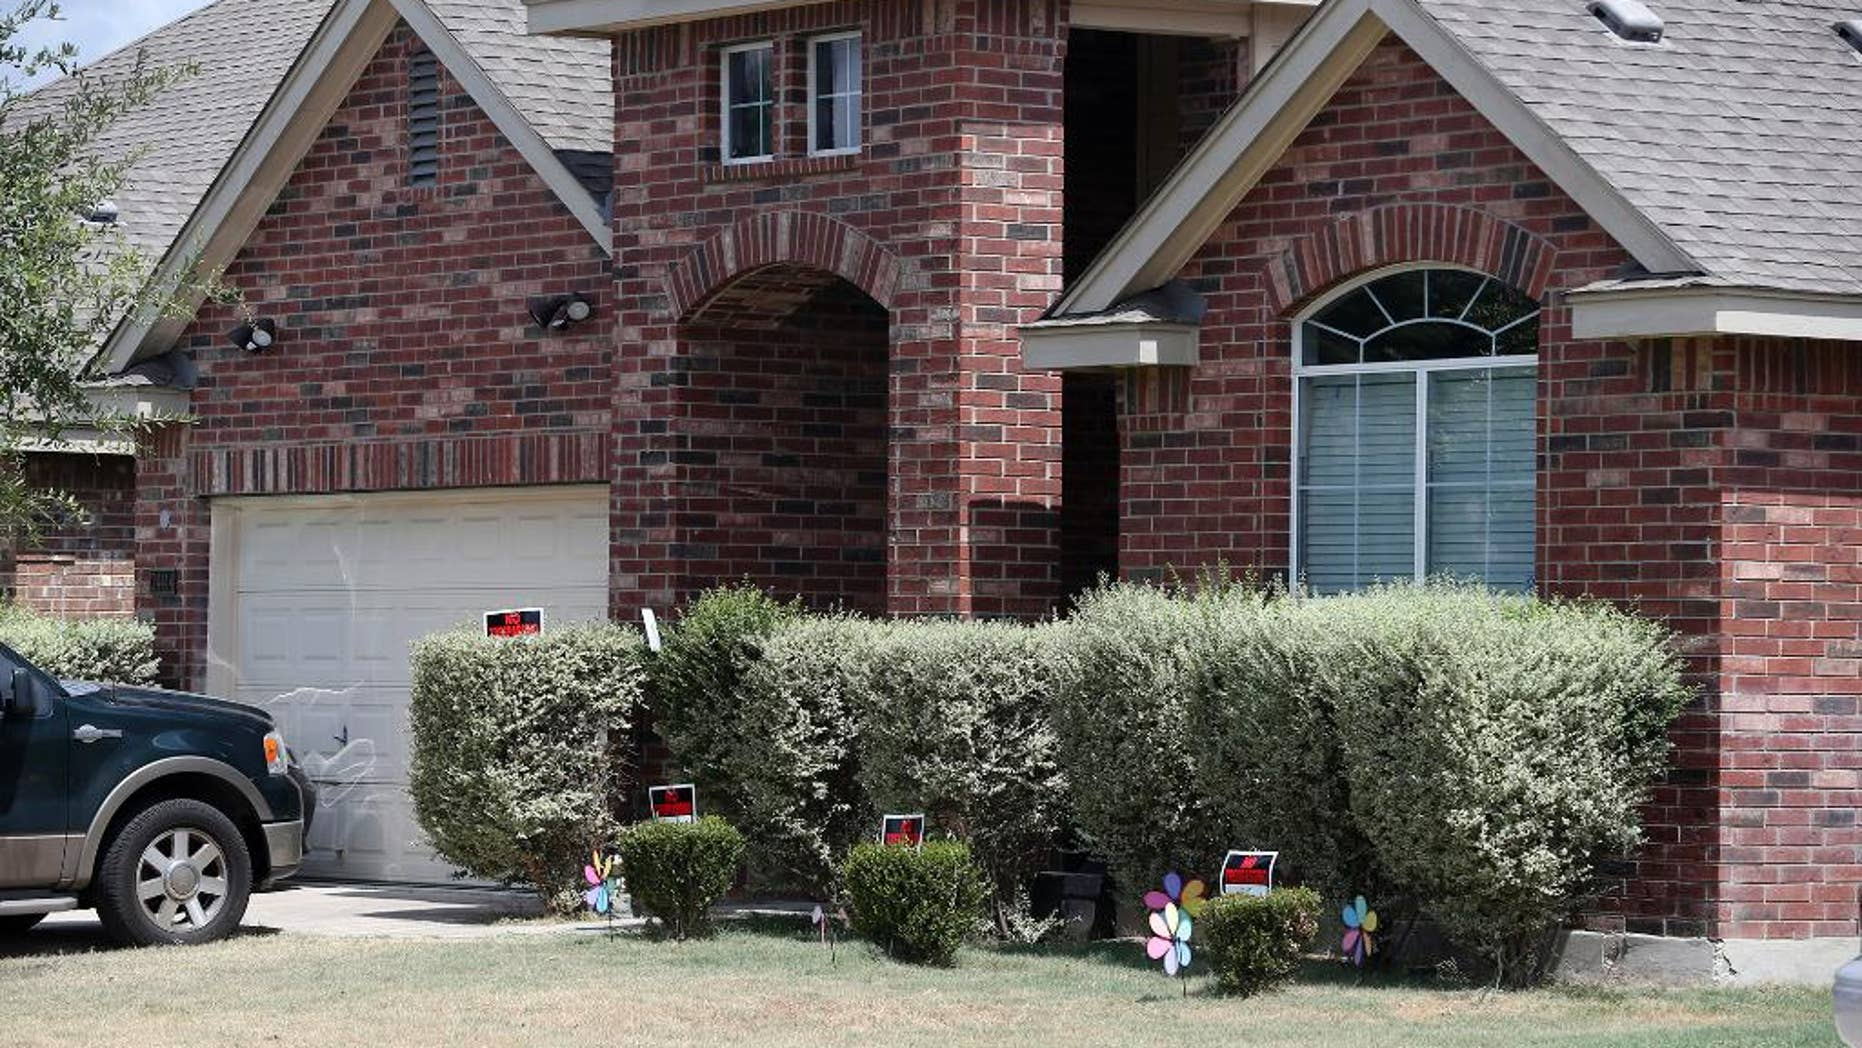 """No trespassing signs are visible at the house Tuesday, Sept. 1, 2015, where deputies fatally shot Gilbert Flores, in Northwest Bexar County, Texas, near San Antonio, last Friday. A Texas prosecutor says a second video has emerged that gives authorities a """"very clear view"""" of a confrontation between deputies and Flores who had his hands raised before he was shot and killed. (John Davenport/The San Antonio Express-News via AP) RUMBO DE SAN ANTONIO OUT; NO SALES; MANDATORY CREDIT"""